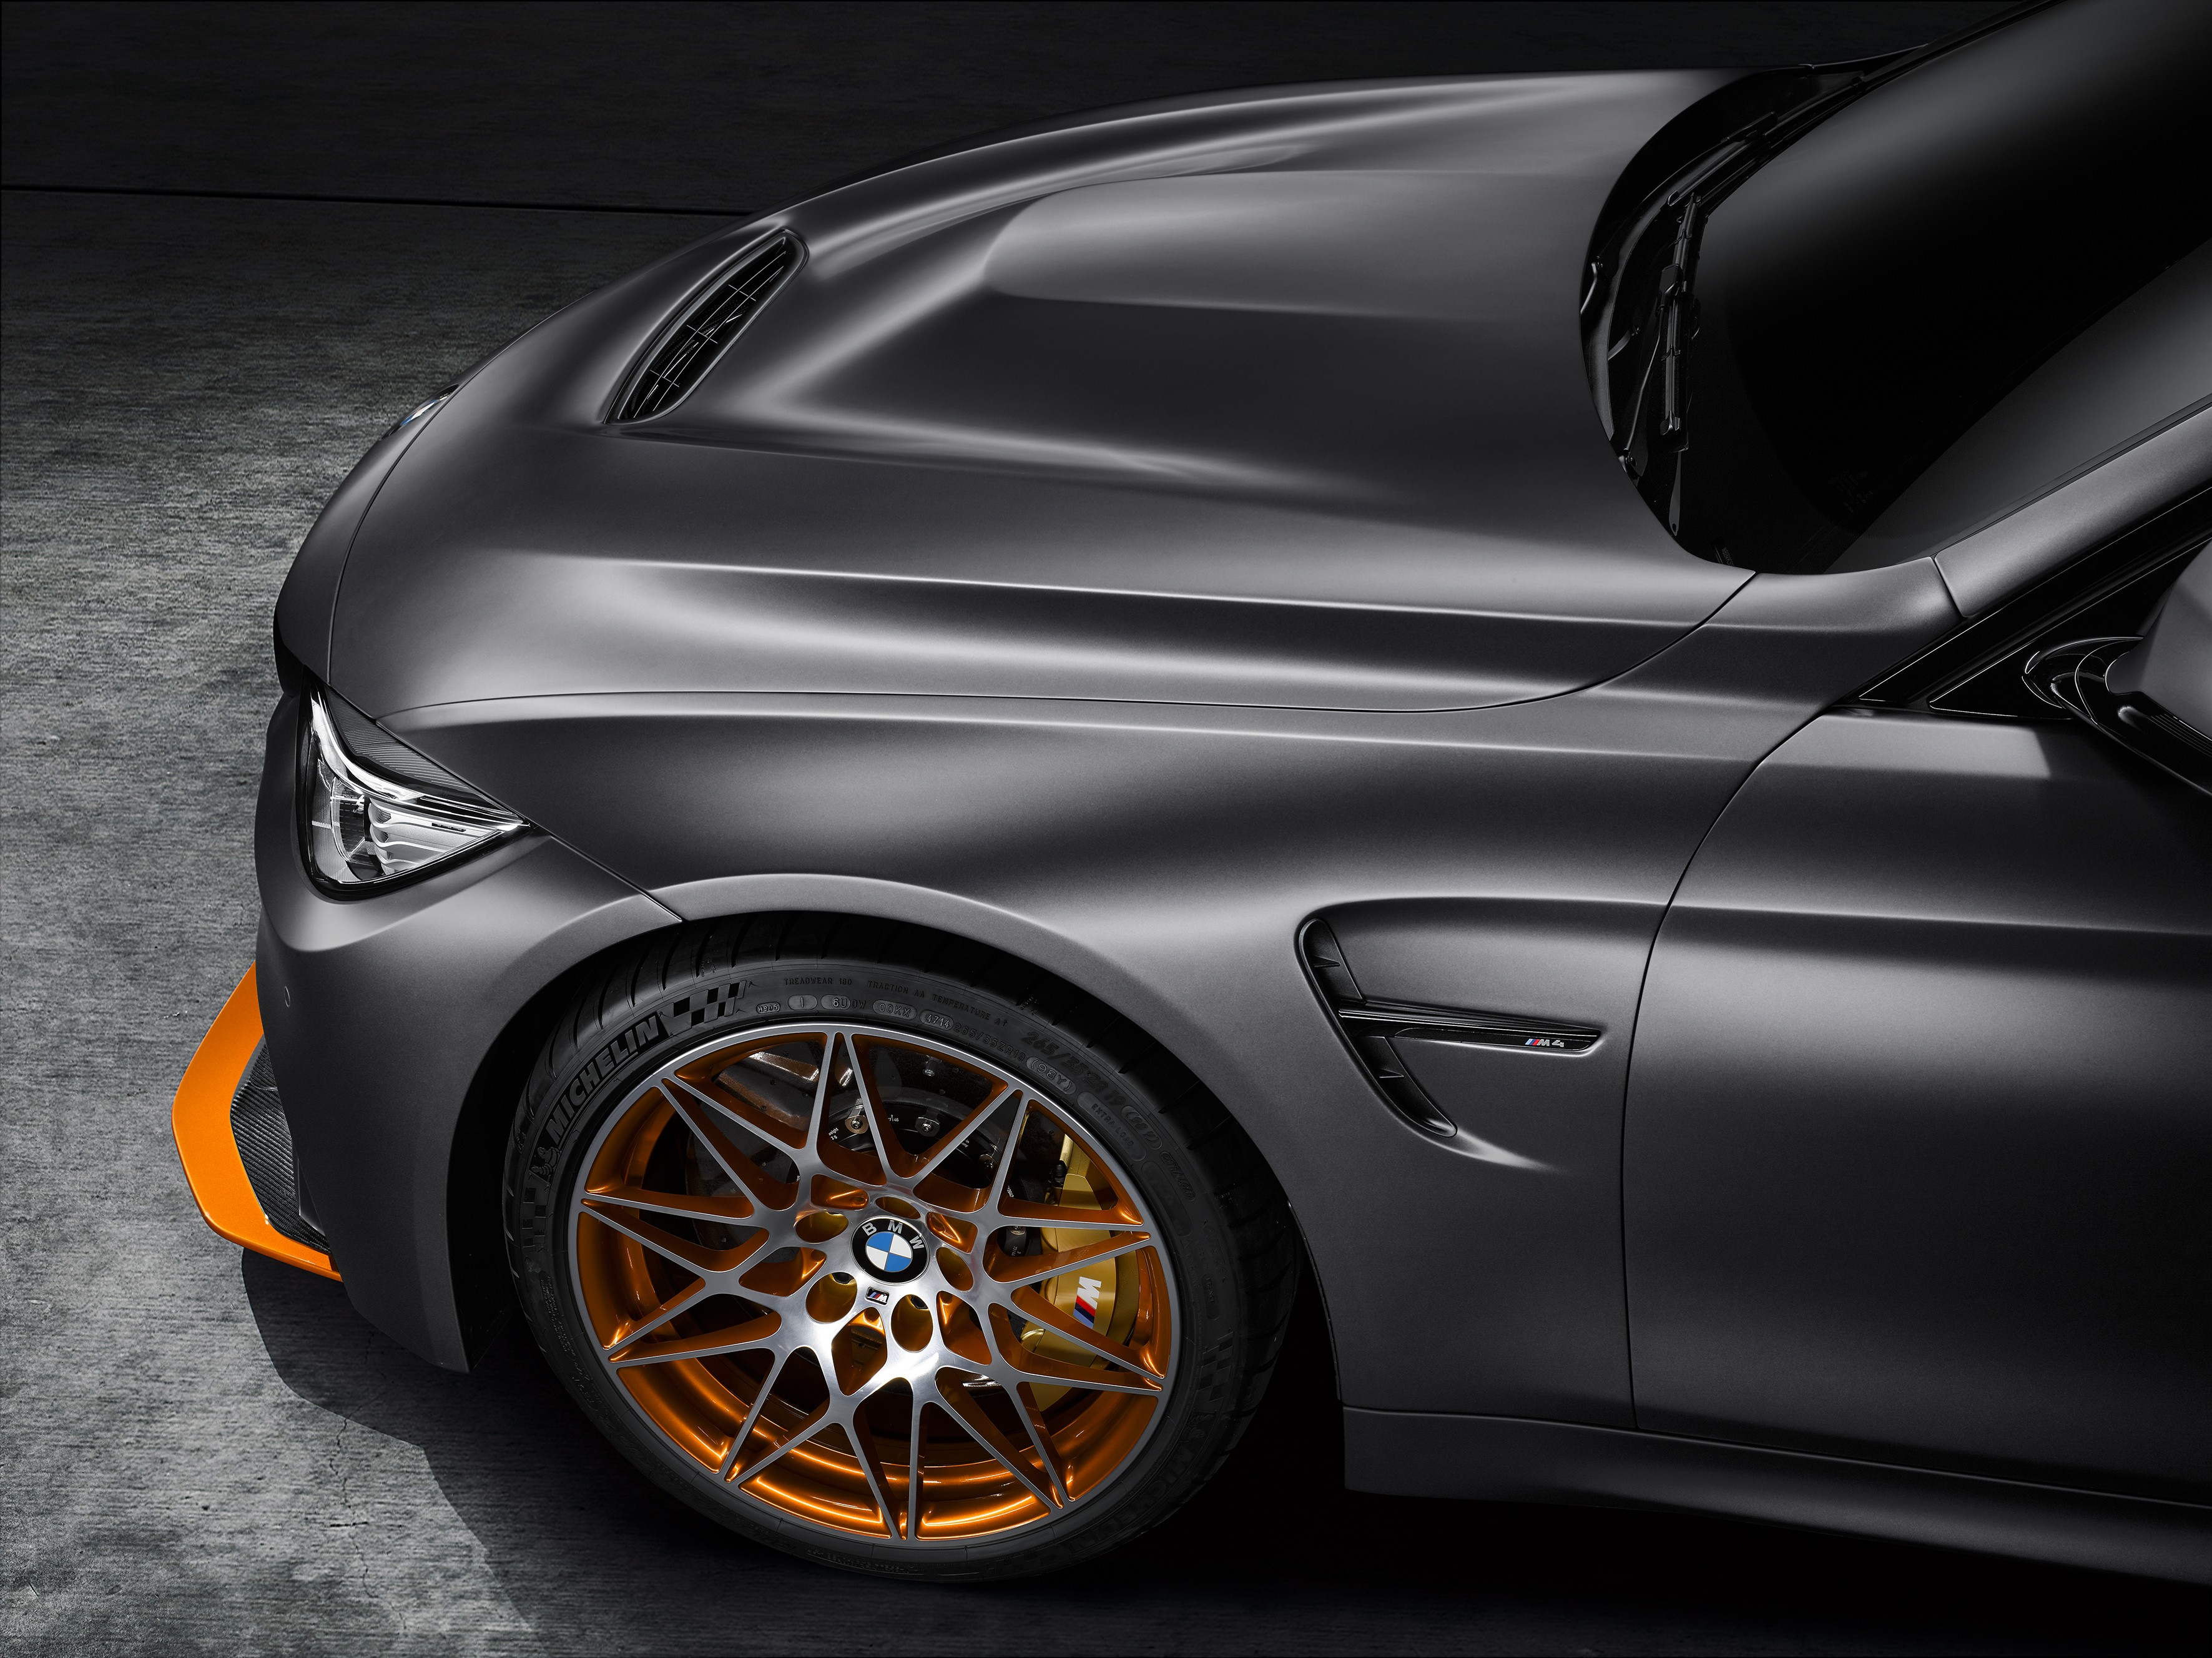 bmw-concept-m4-gts-makes-world-debut-at-pebble-beach-with-oled-lighting-photo-gallery_8